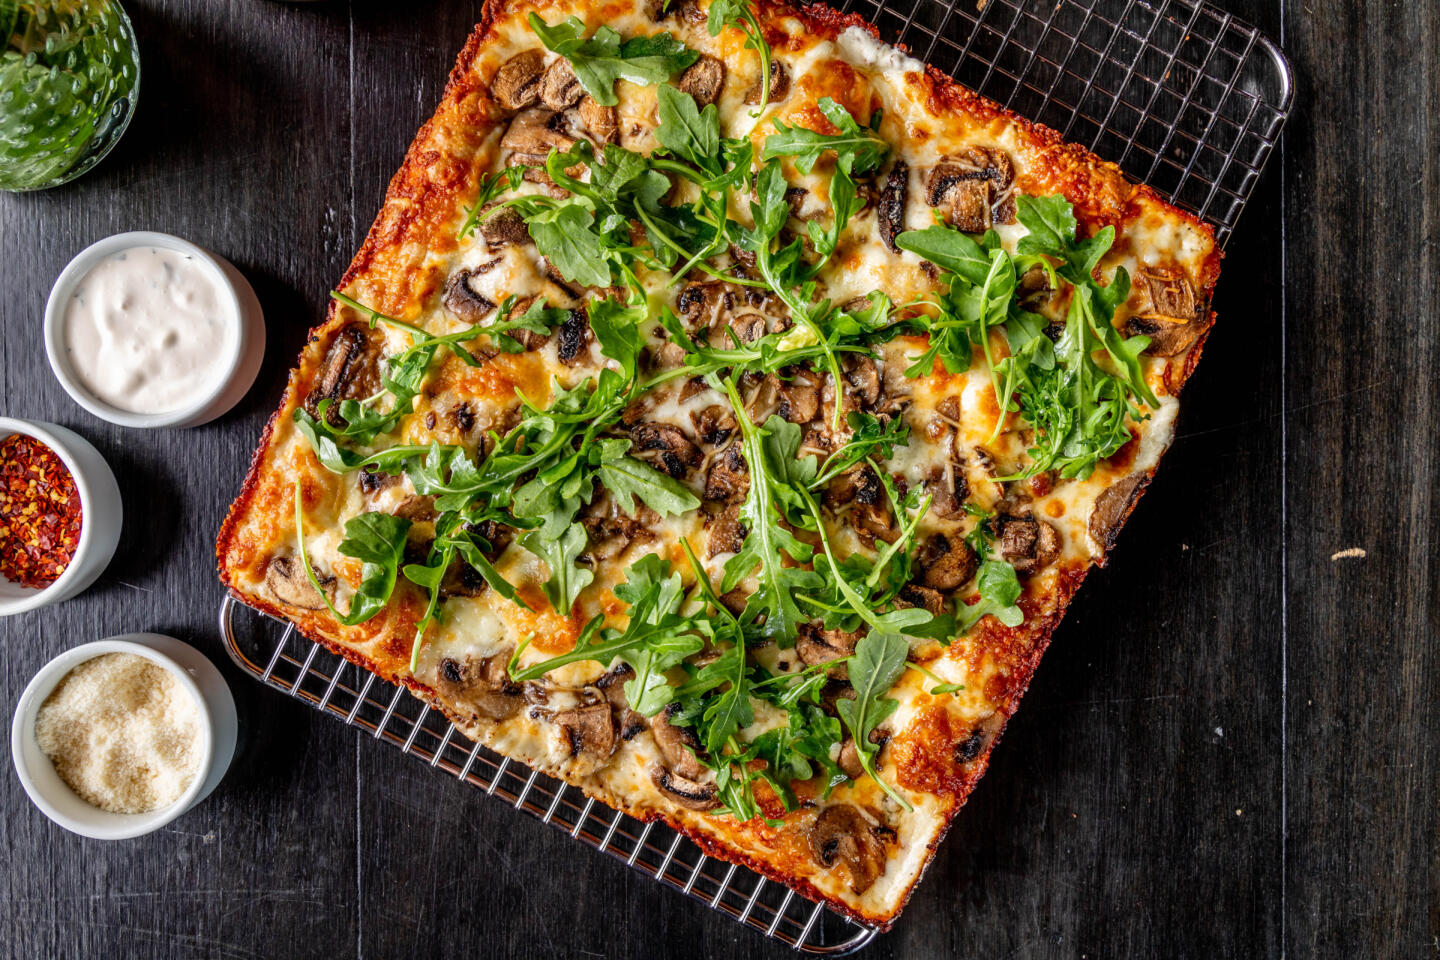 Mushroom Pizza from B Square